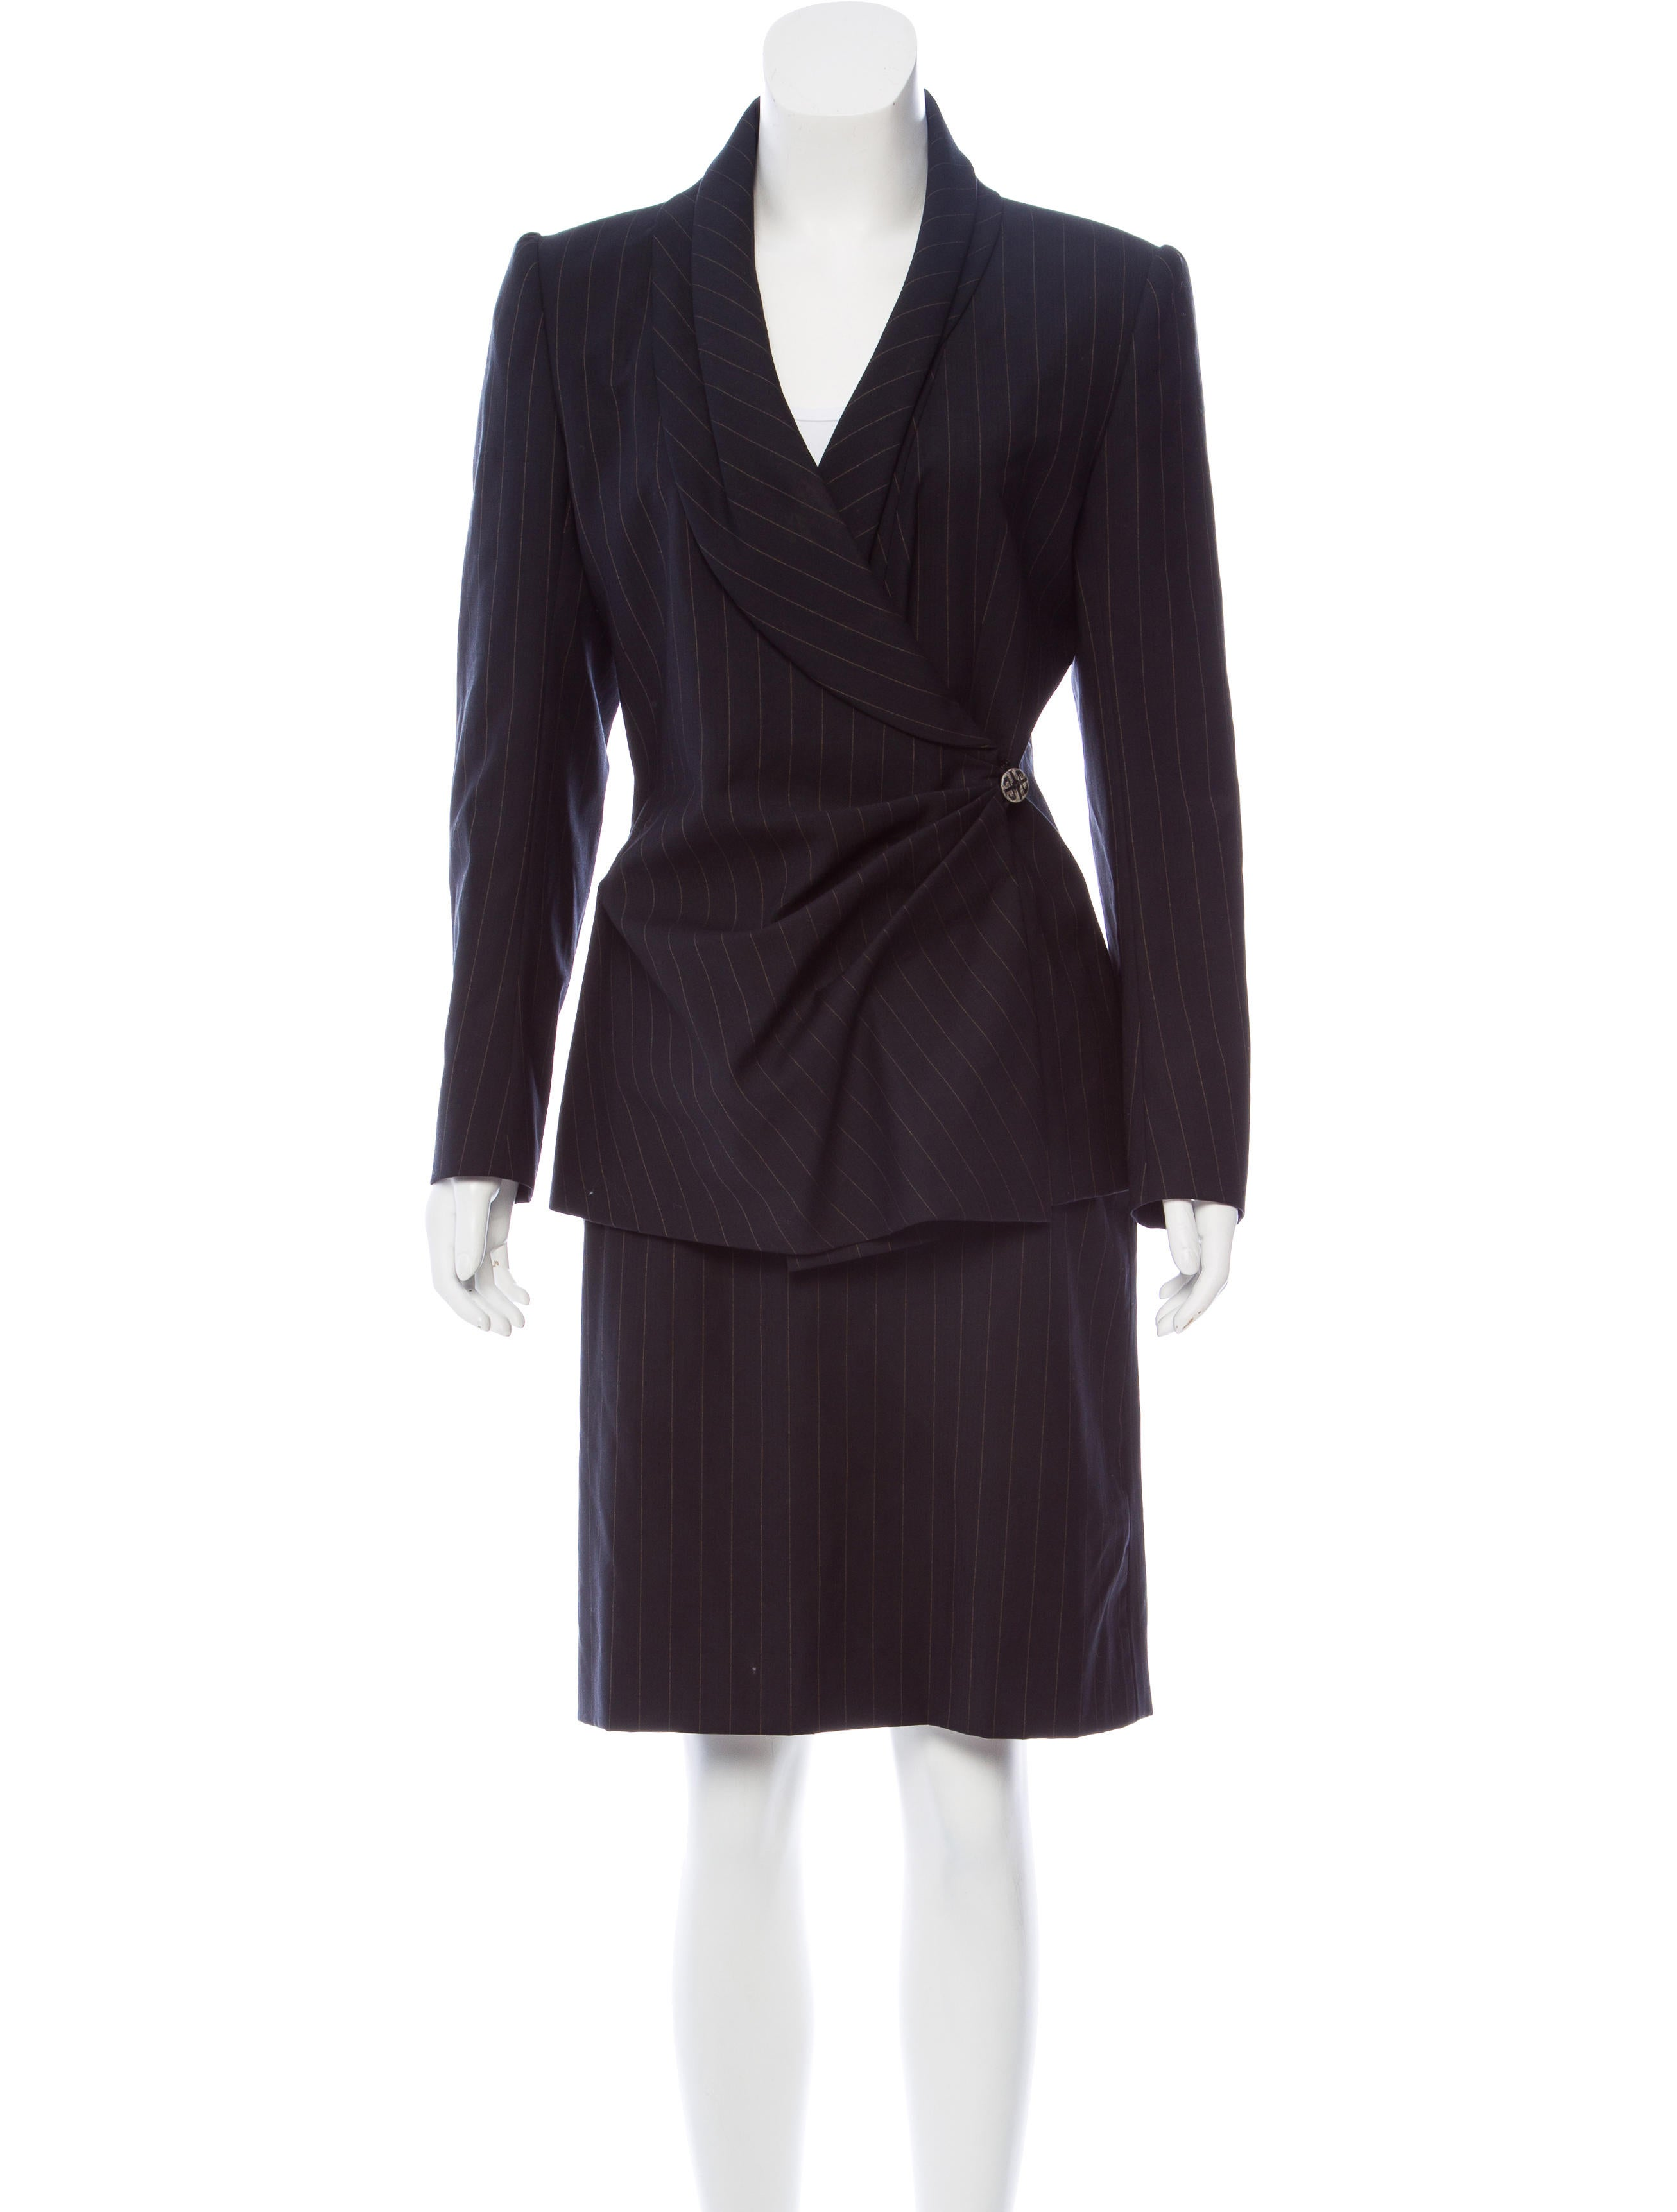 Givenchy Vintage Pinstriped Skirt Suit Clothing  : GIV444201enlarged from www.therealreal.com size 2613 x 3447 jpeg 267kB